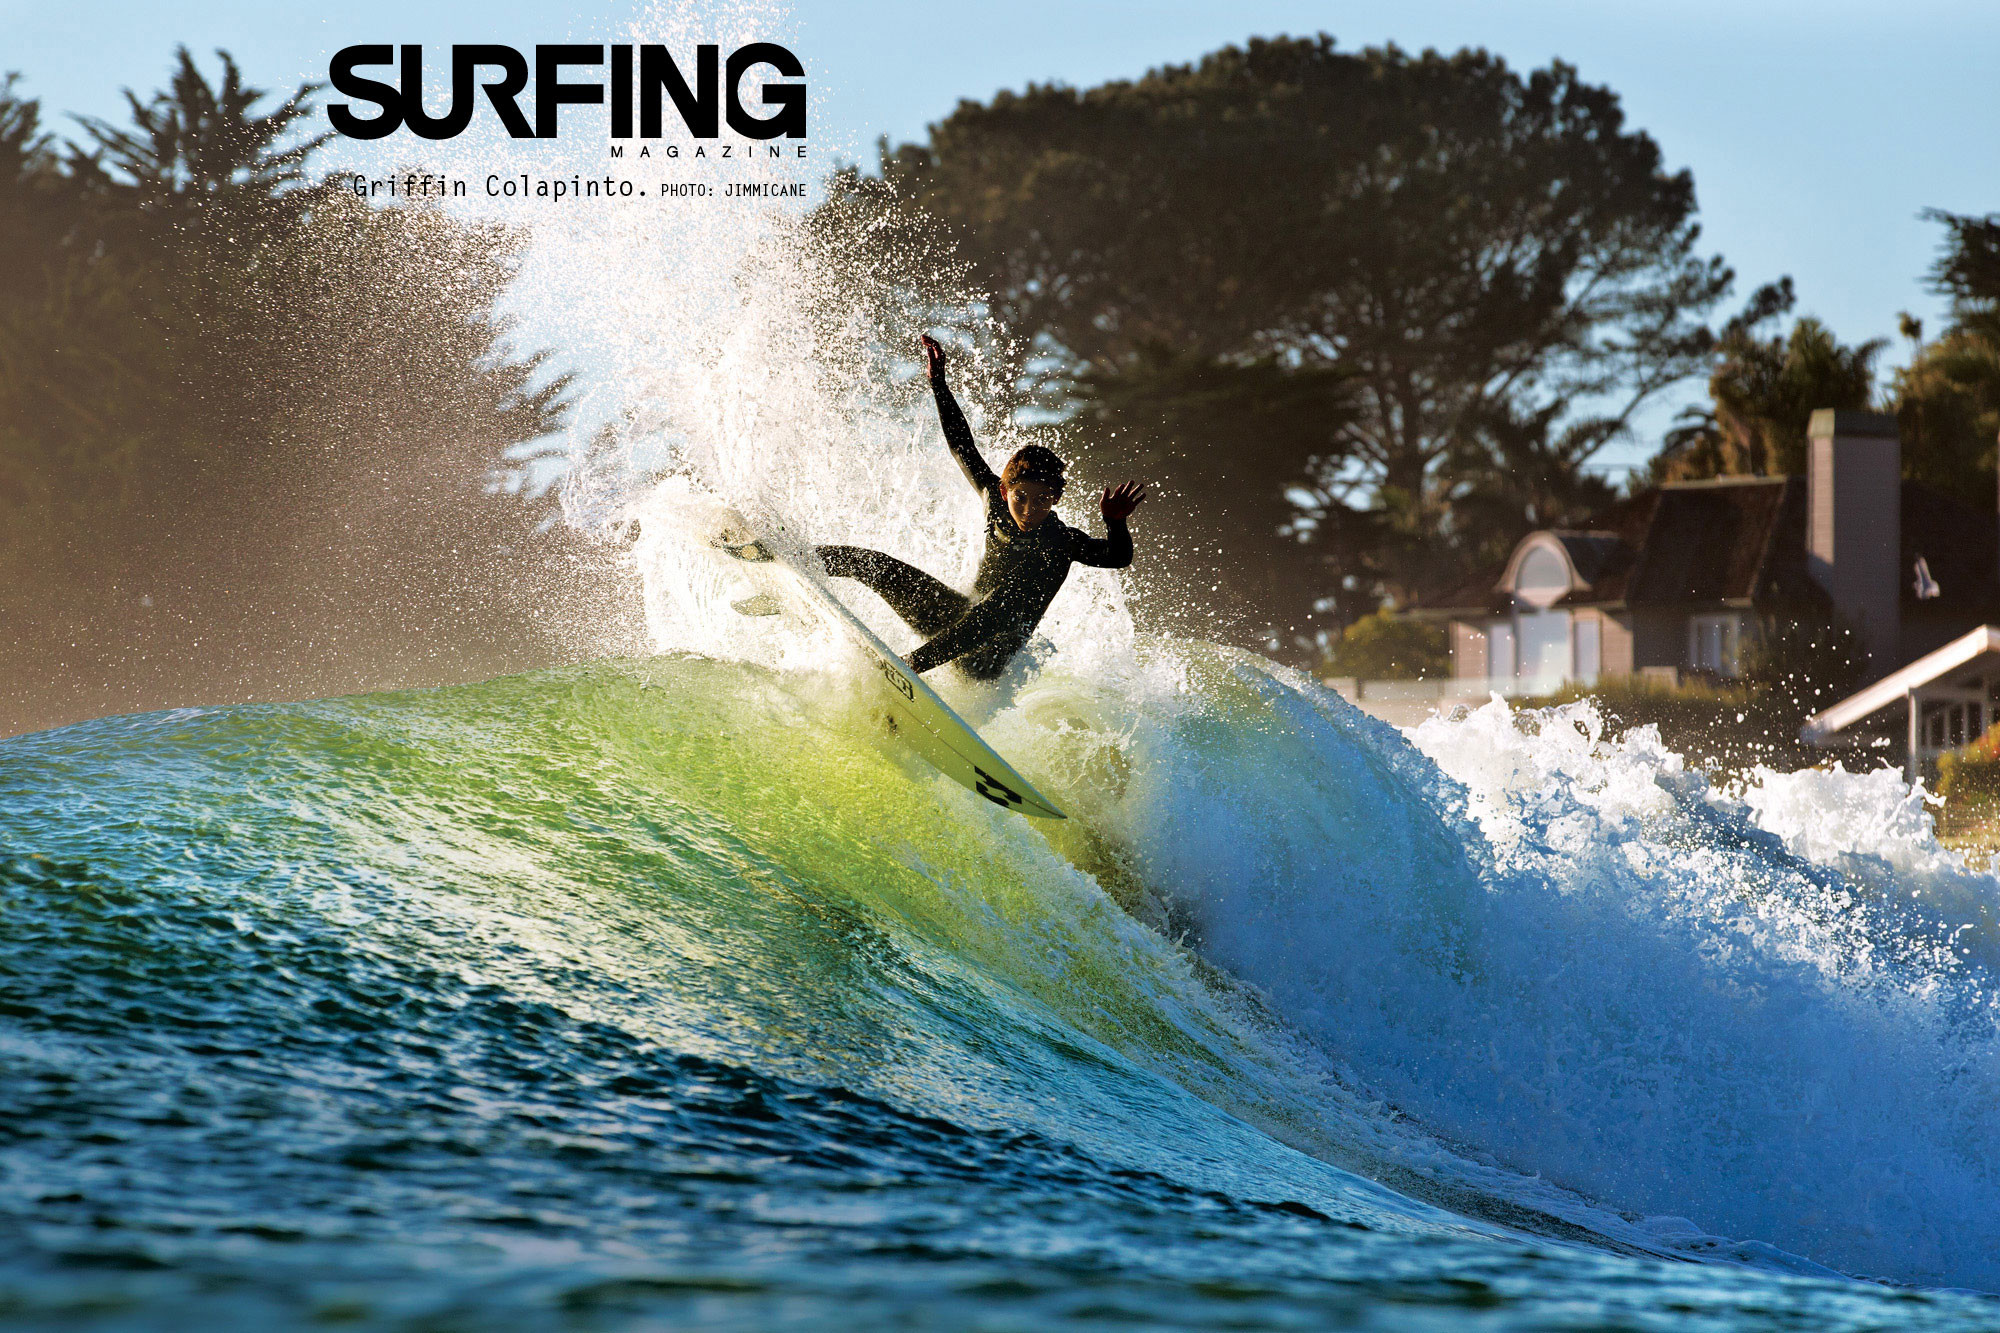 2048x2048 SURFER Magazine Wallpapers